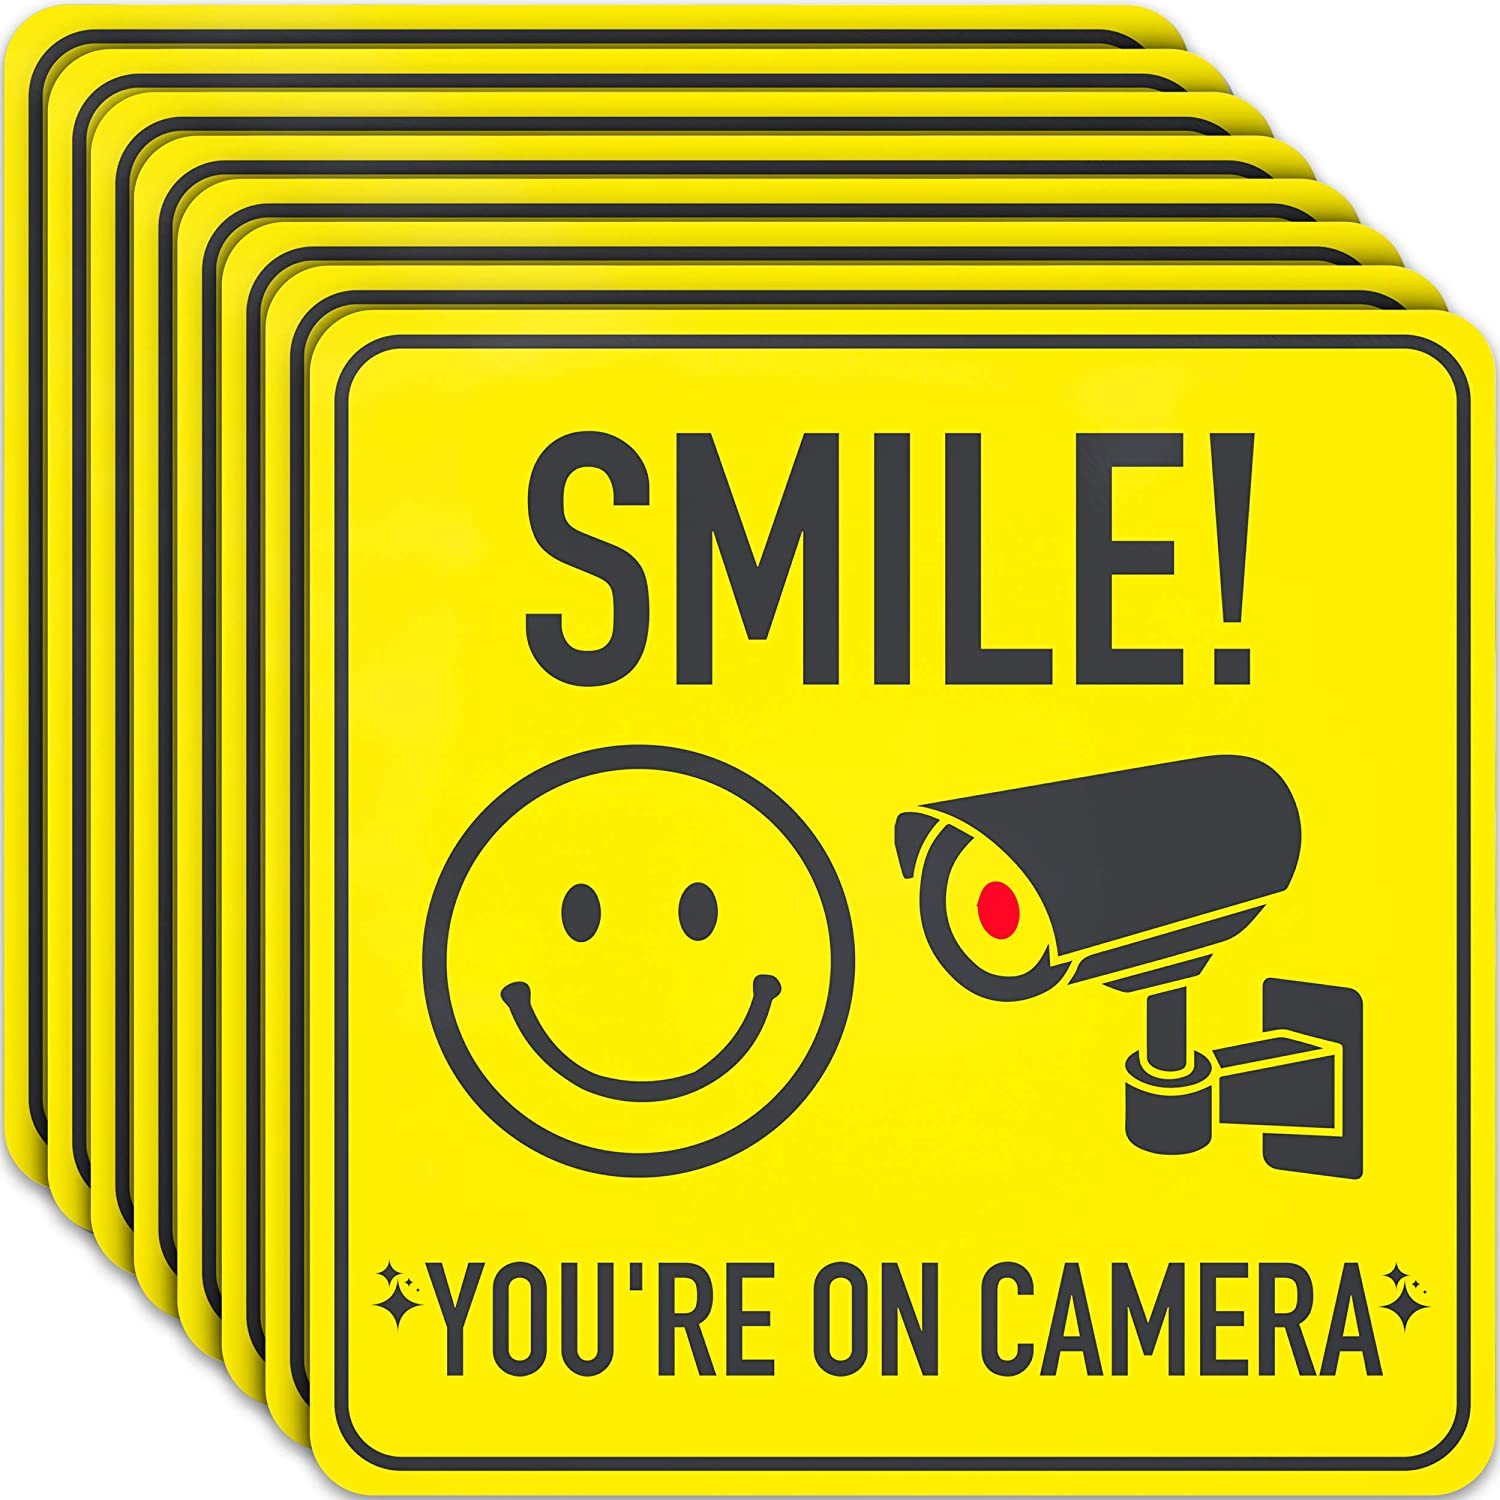 Video Surveillance Security Sign Stickers - 7 X 7 Inch - 8 Pack - Polite Smile You're On Camera Signs to Prevent Trespassing on Private Property - Perfect for House, Business, Yard or Private Driveway